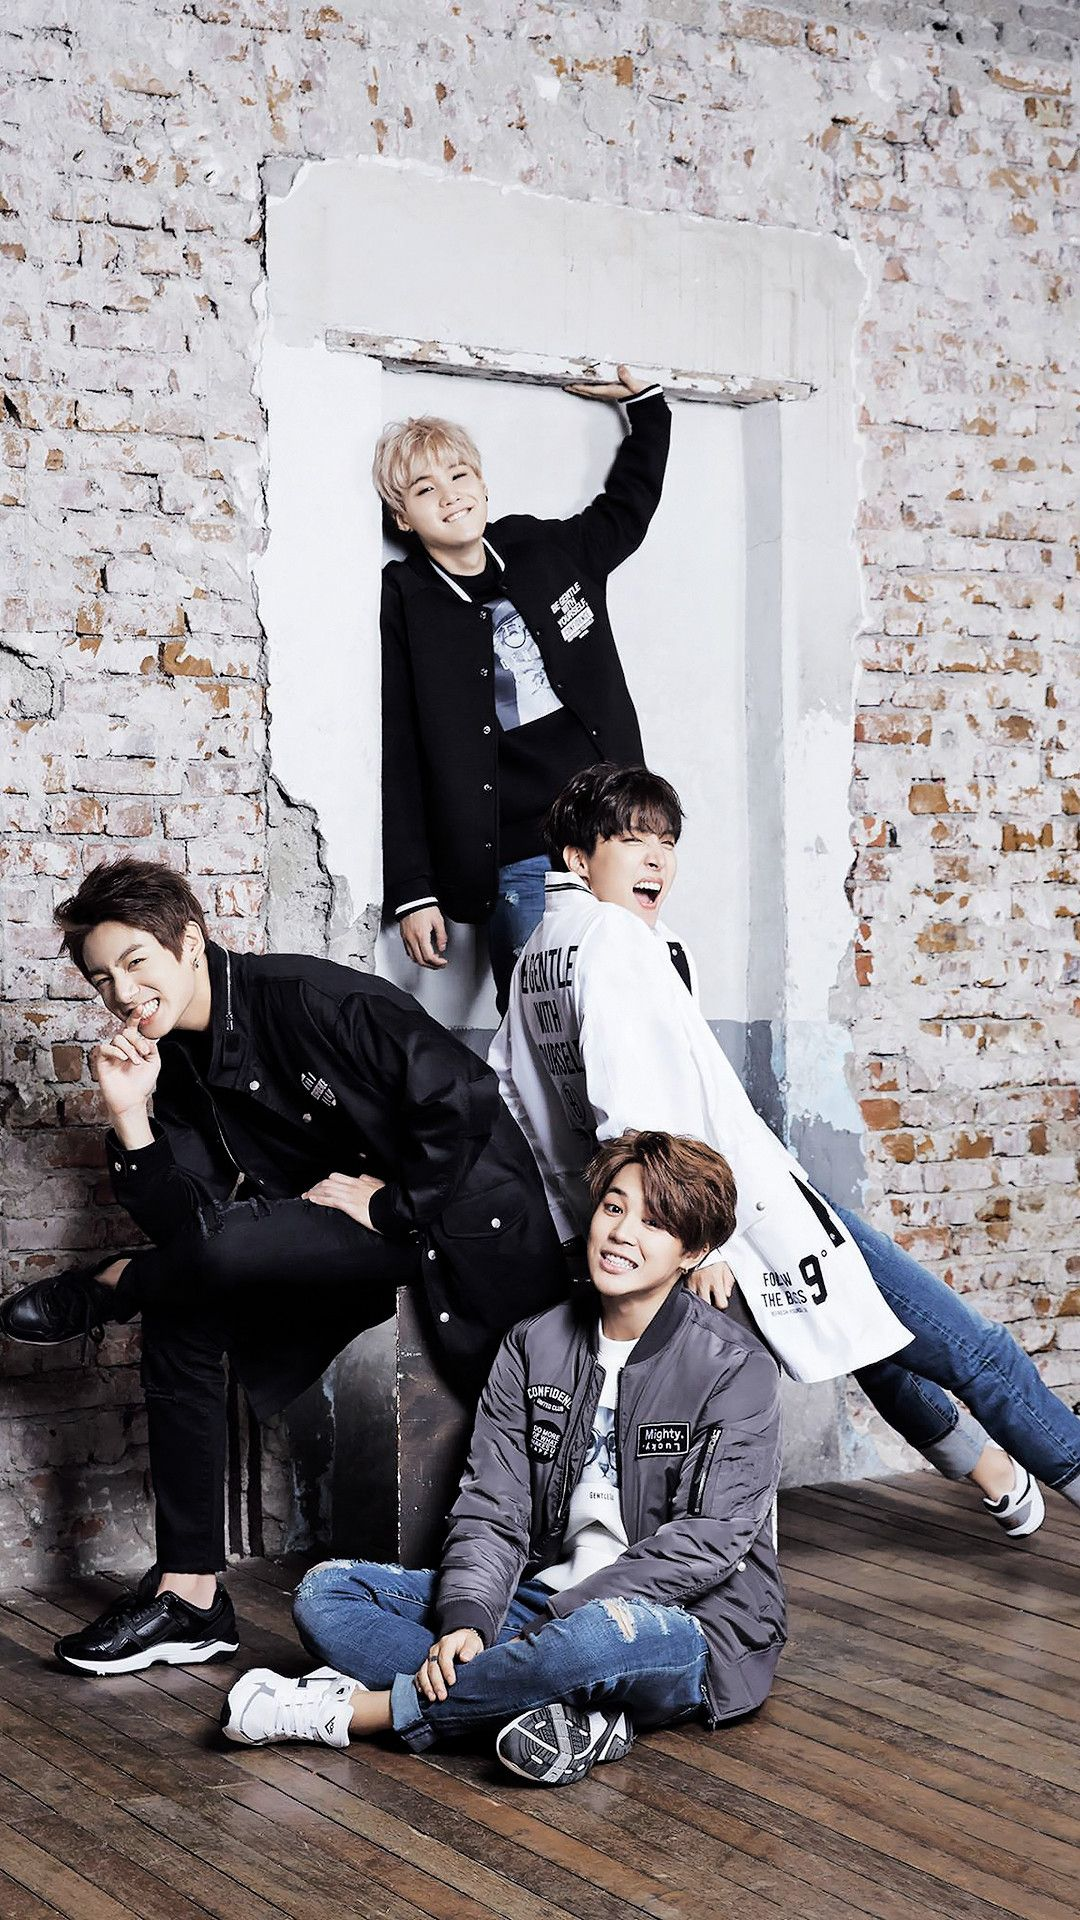 1080x1920 Bts Wallpaper Samsung Phone Bangtan Jimin Jungkook Bts Photo